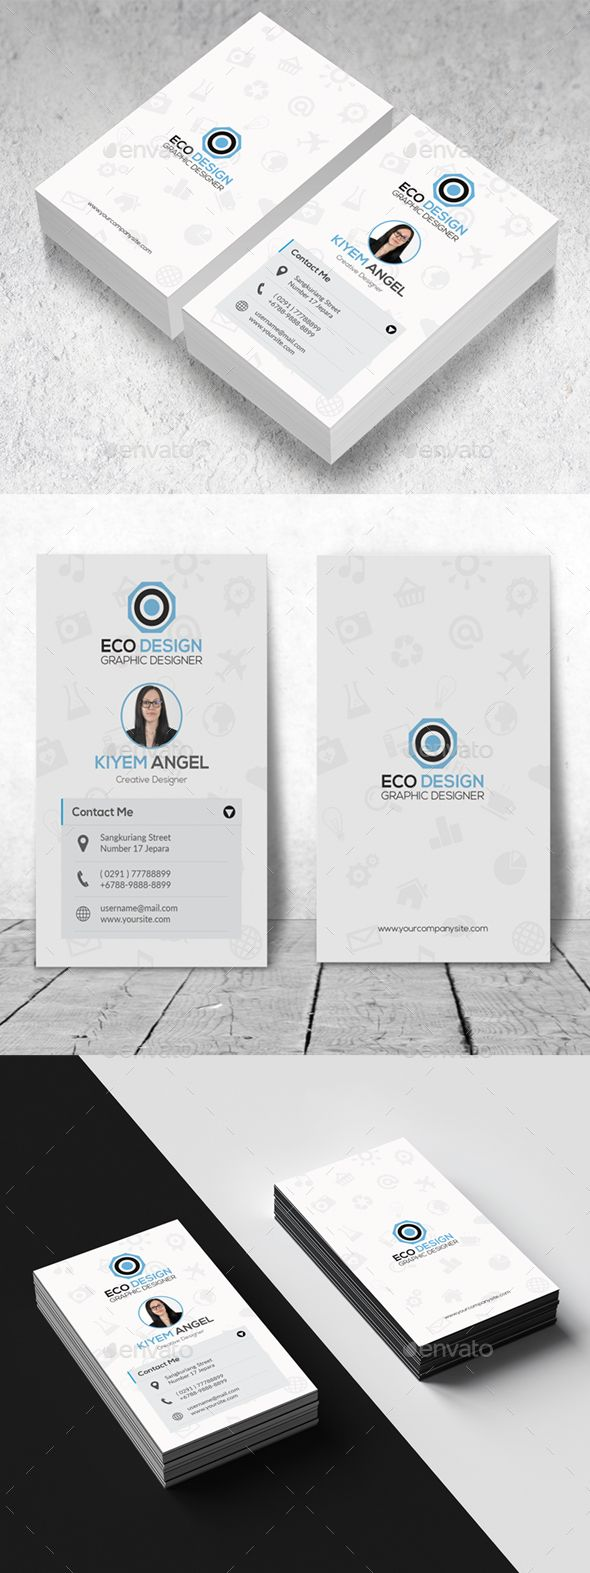 Clean #Vertical Business Card - Corporate #Business #Cards Download here: https://graphicriver.net/item/clean-vertical-business-card/19250877?ref=alena994